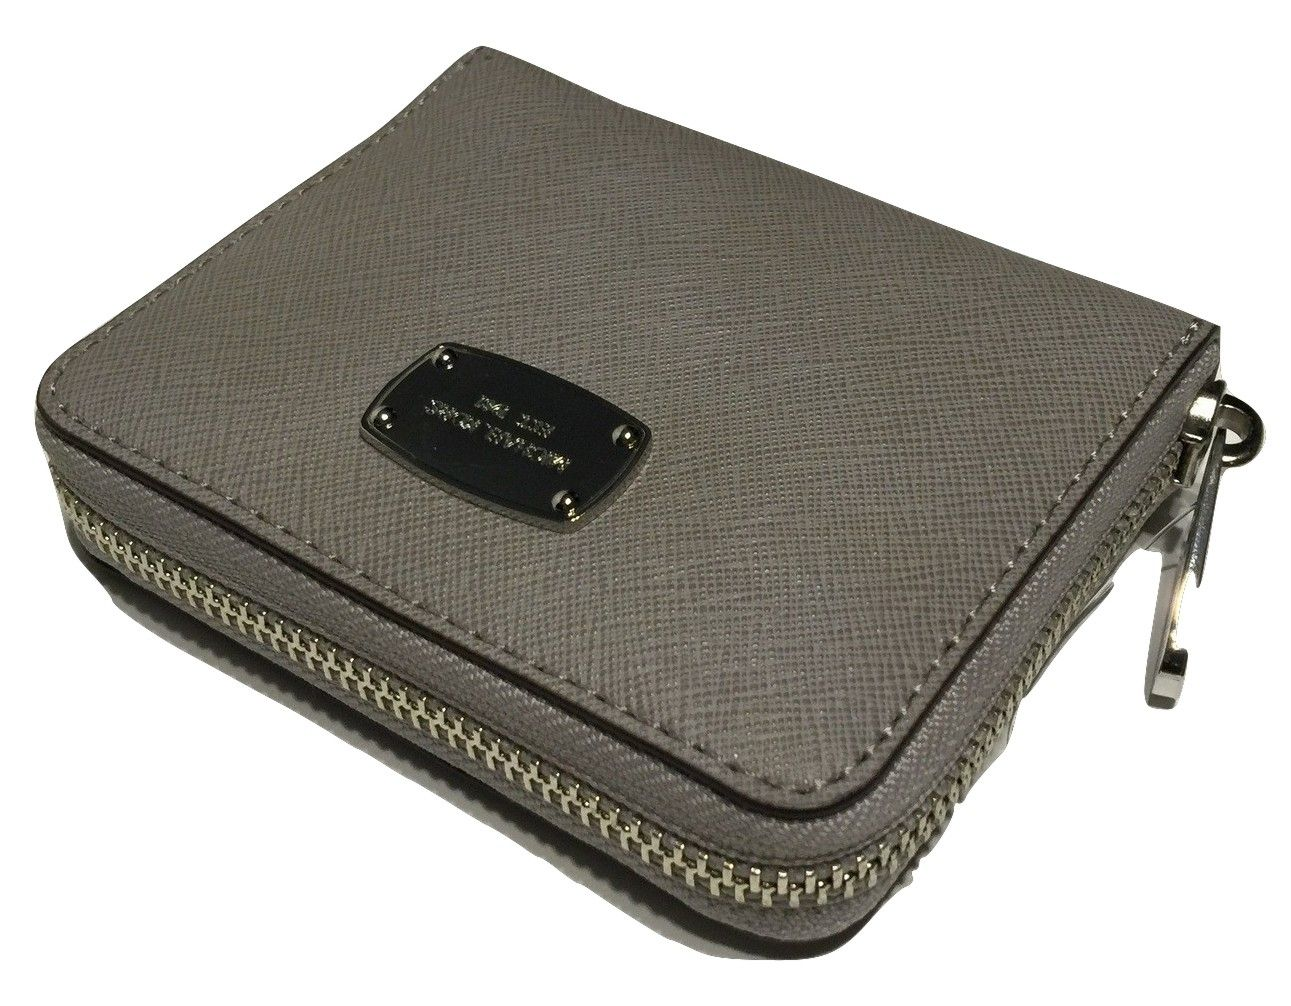 ba8cb0933d77c8 Michael Kors ZA Bifold Jet Set Travel Clutch Wallet Pearl Grey Saffiano  Leather. Get the lowest price on Michael Kors ZA Bifold Jet Set Travel  Clutch Wallet ...